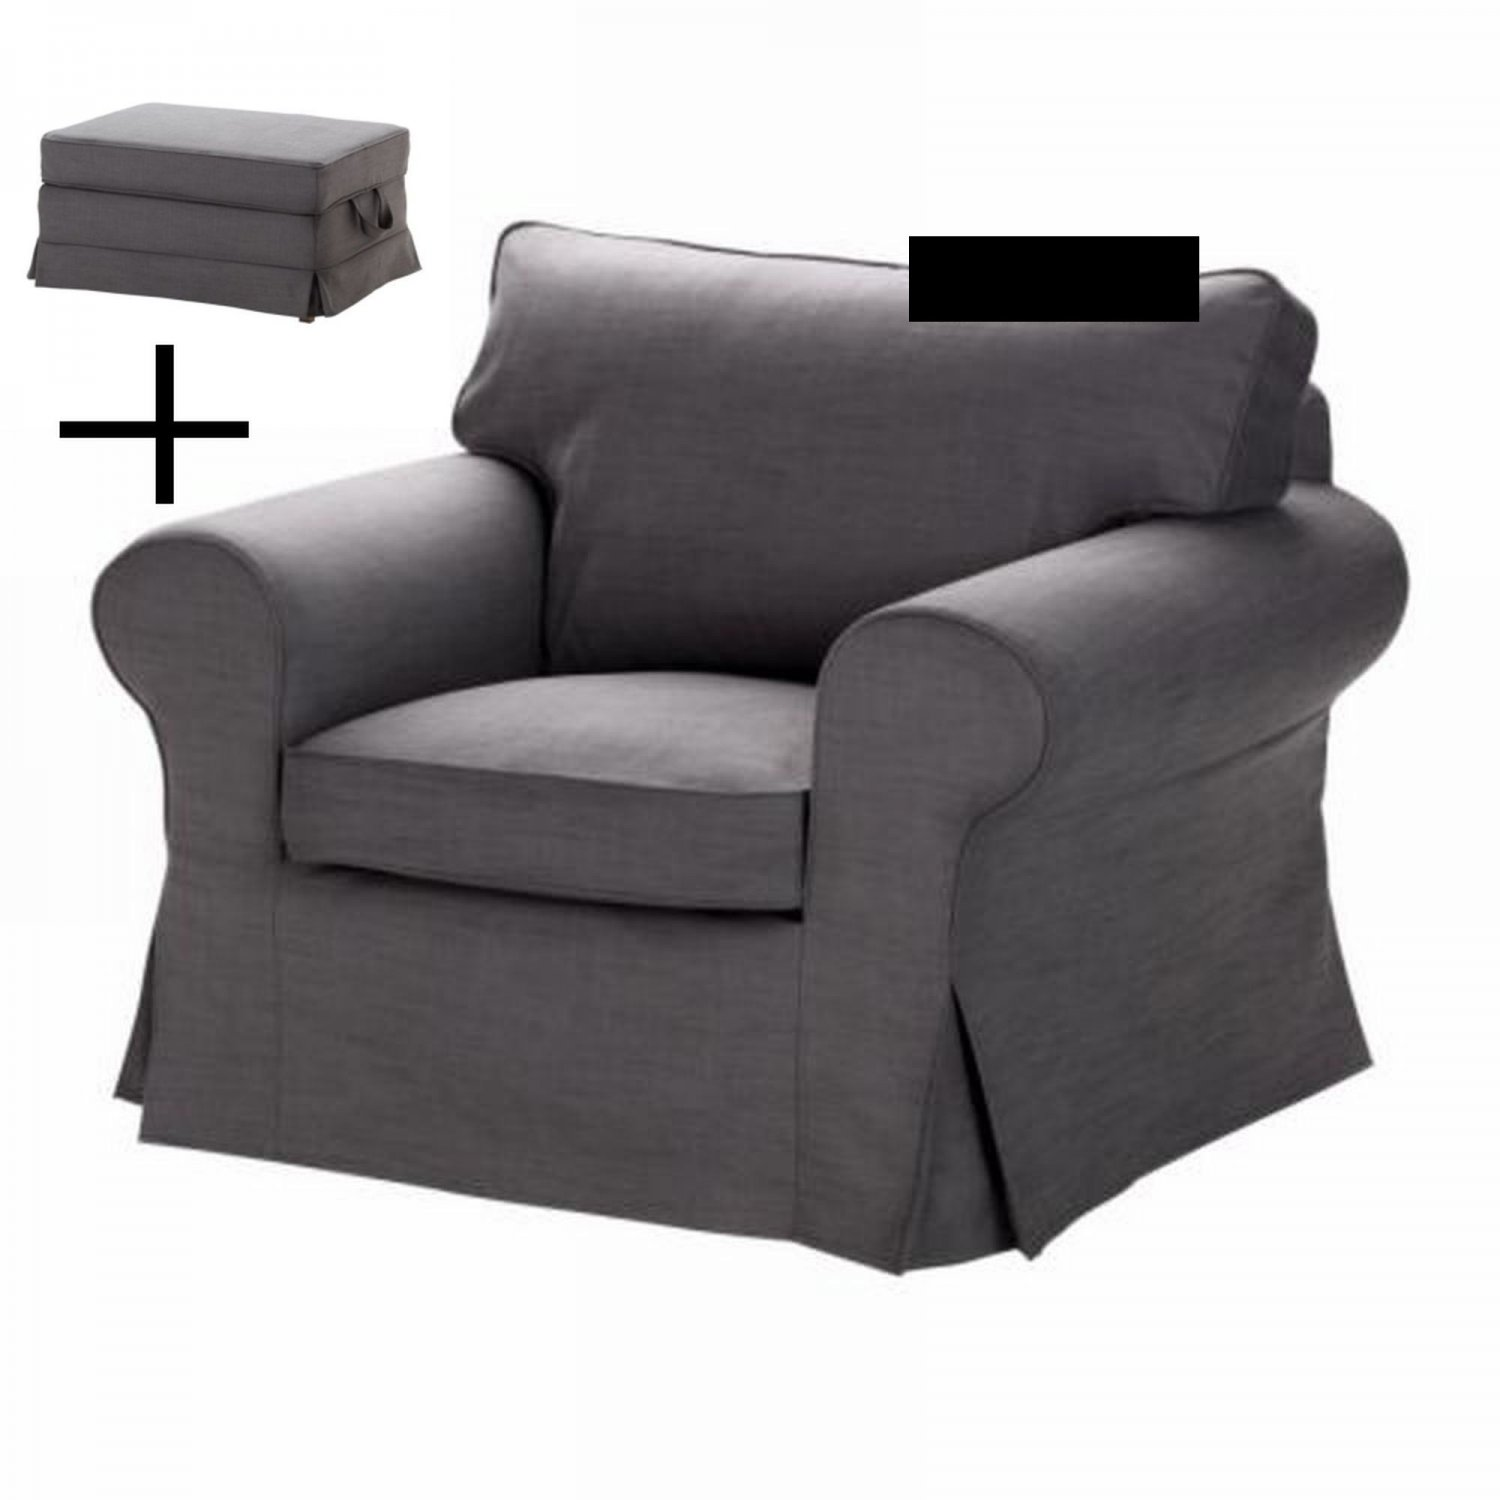 Ikea Ektorp Chair Ikea Ektorp Armchair And Bromma Footstool Cover Chair  Ottoman Slipcover Svanby Gray Grey